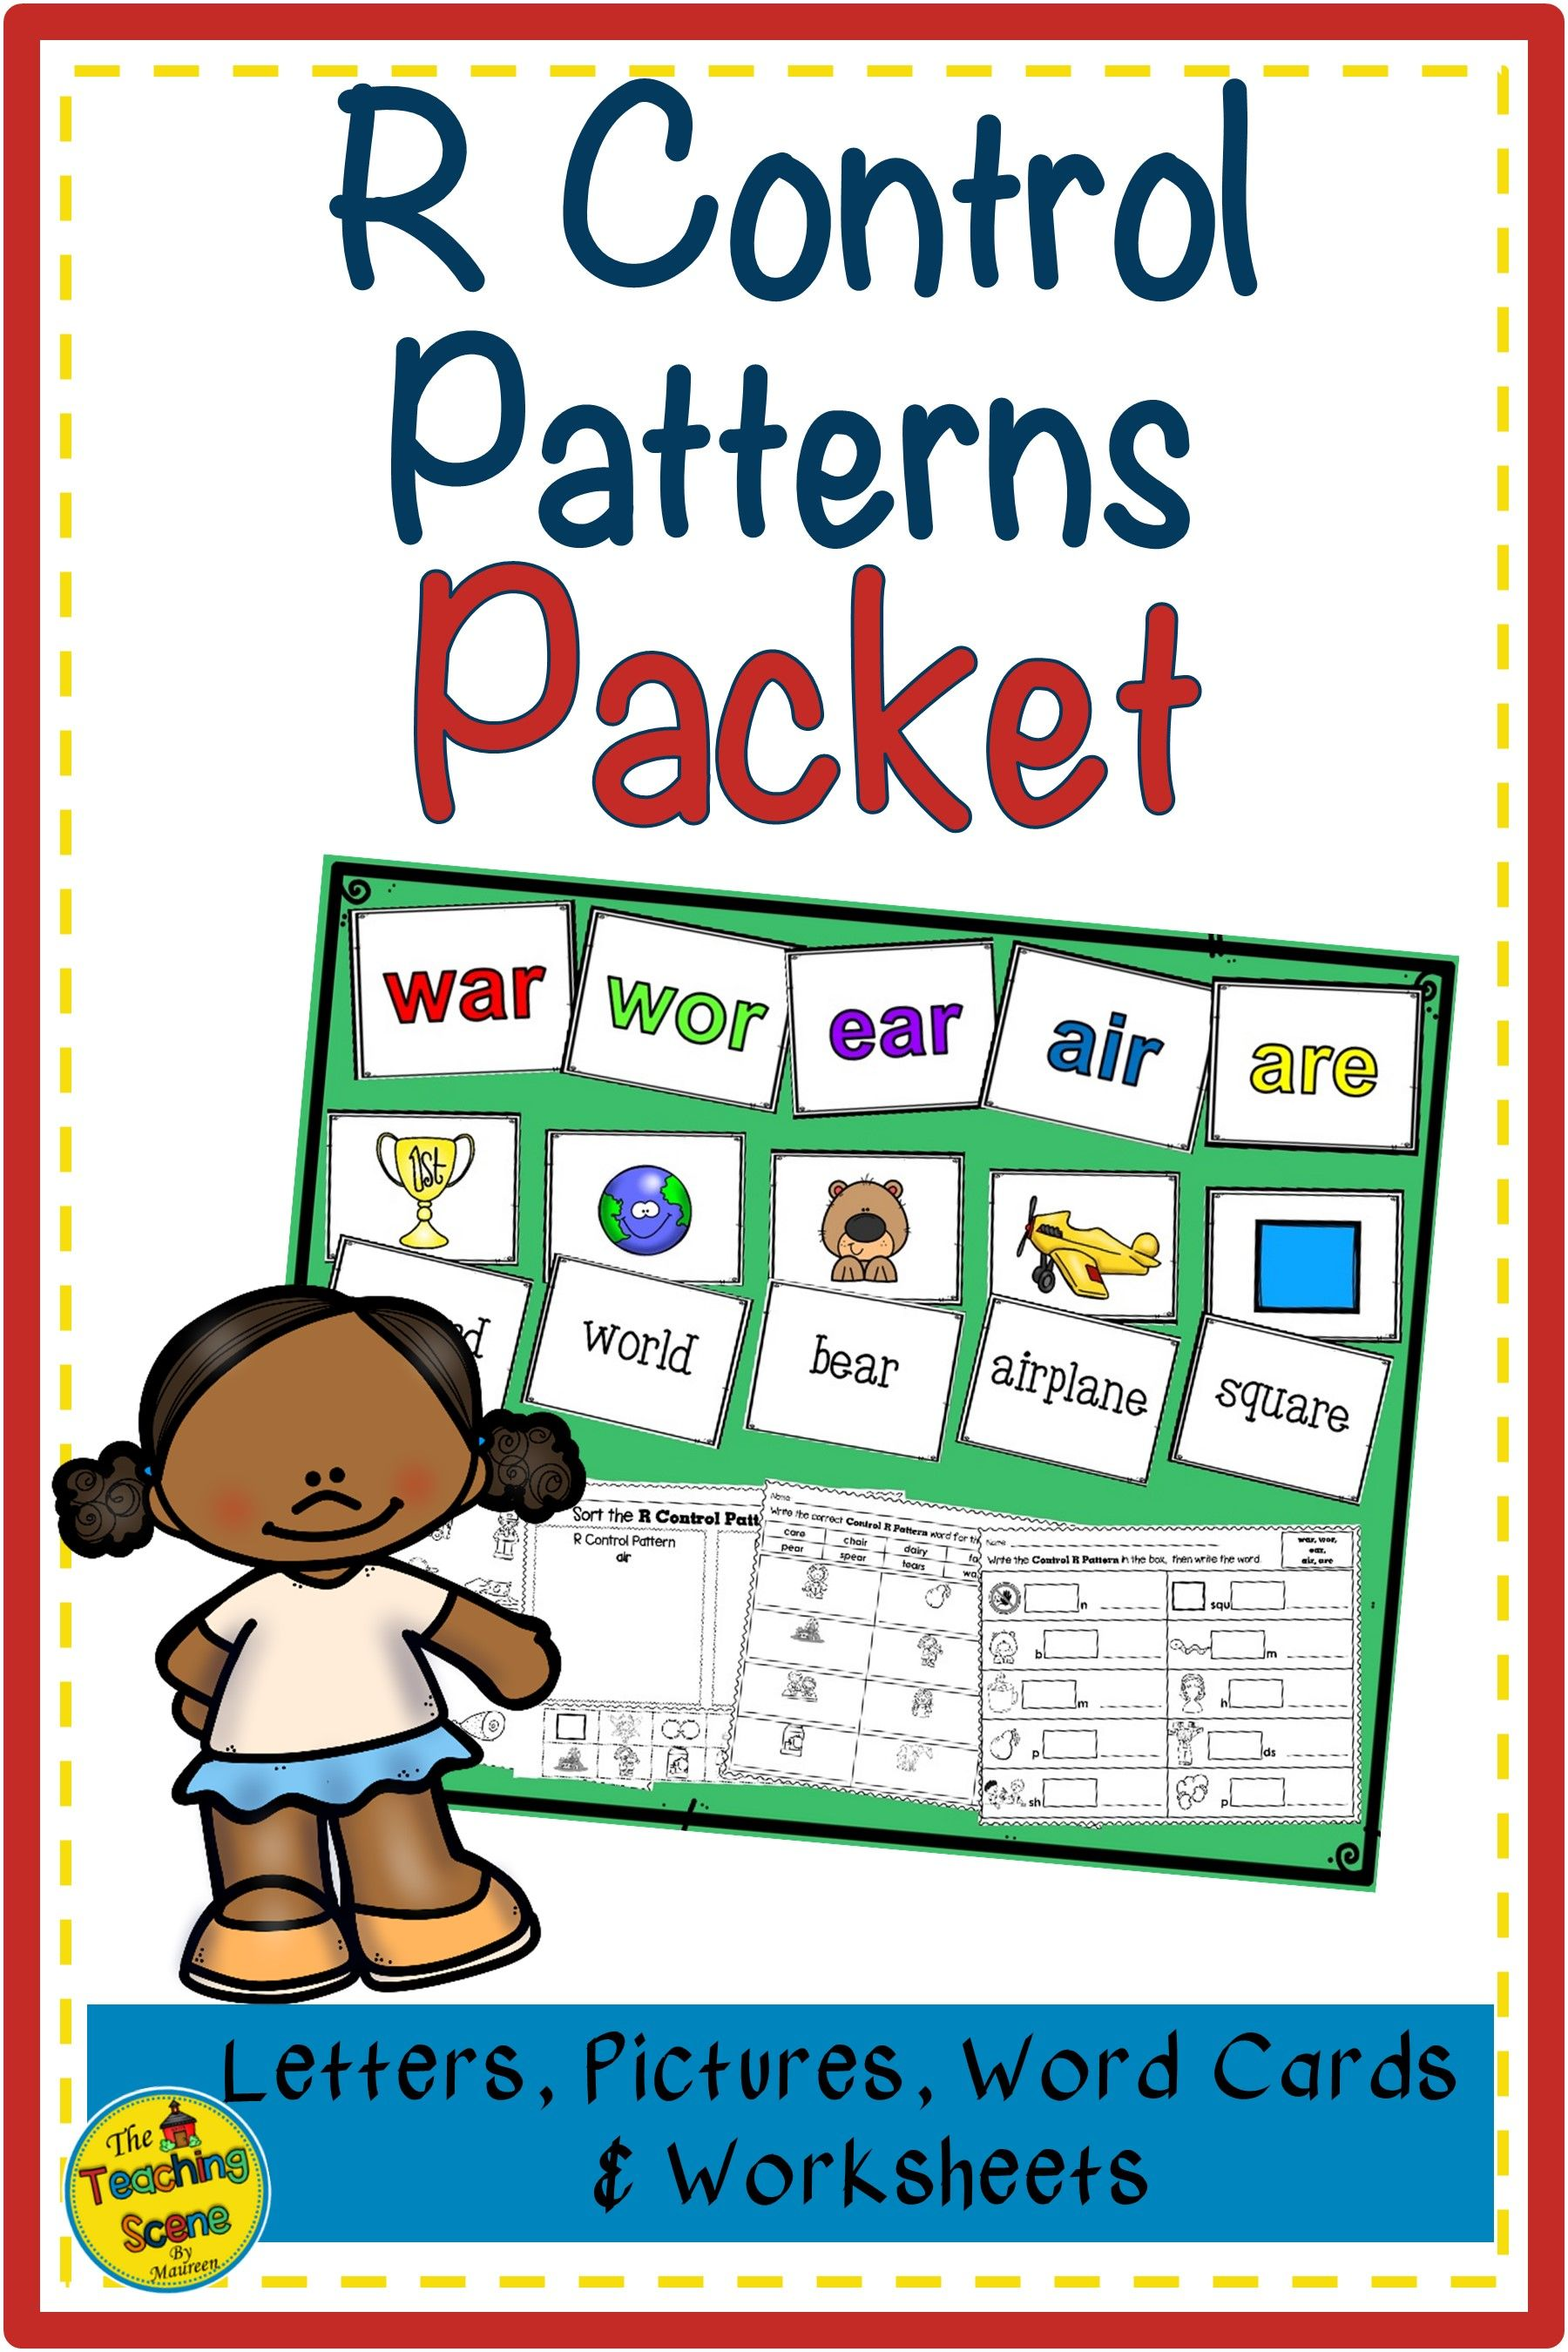 R Control Patterns Packet Letters Pictures Words